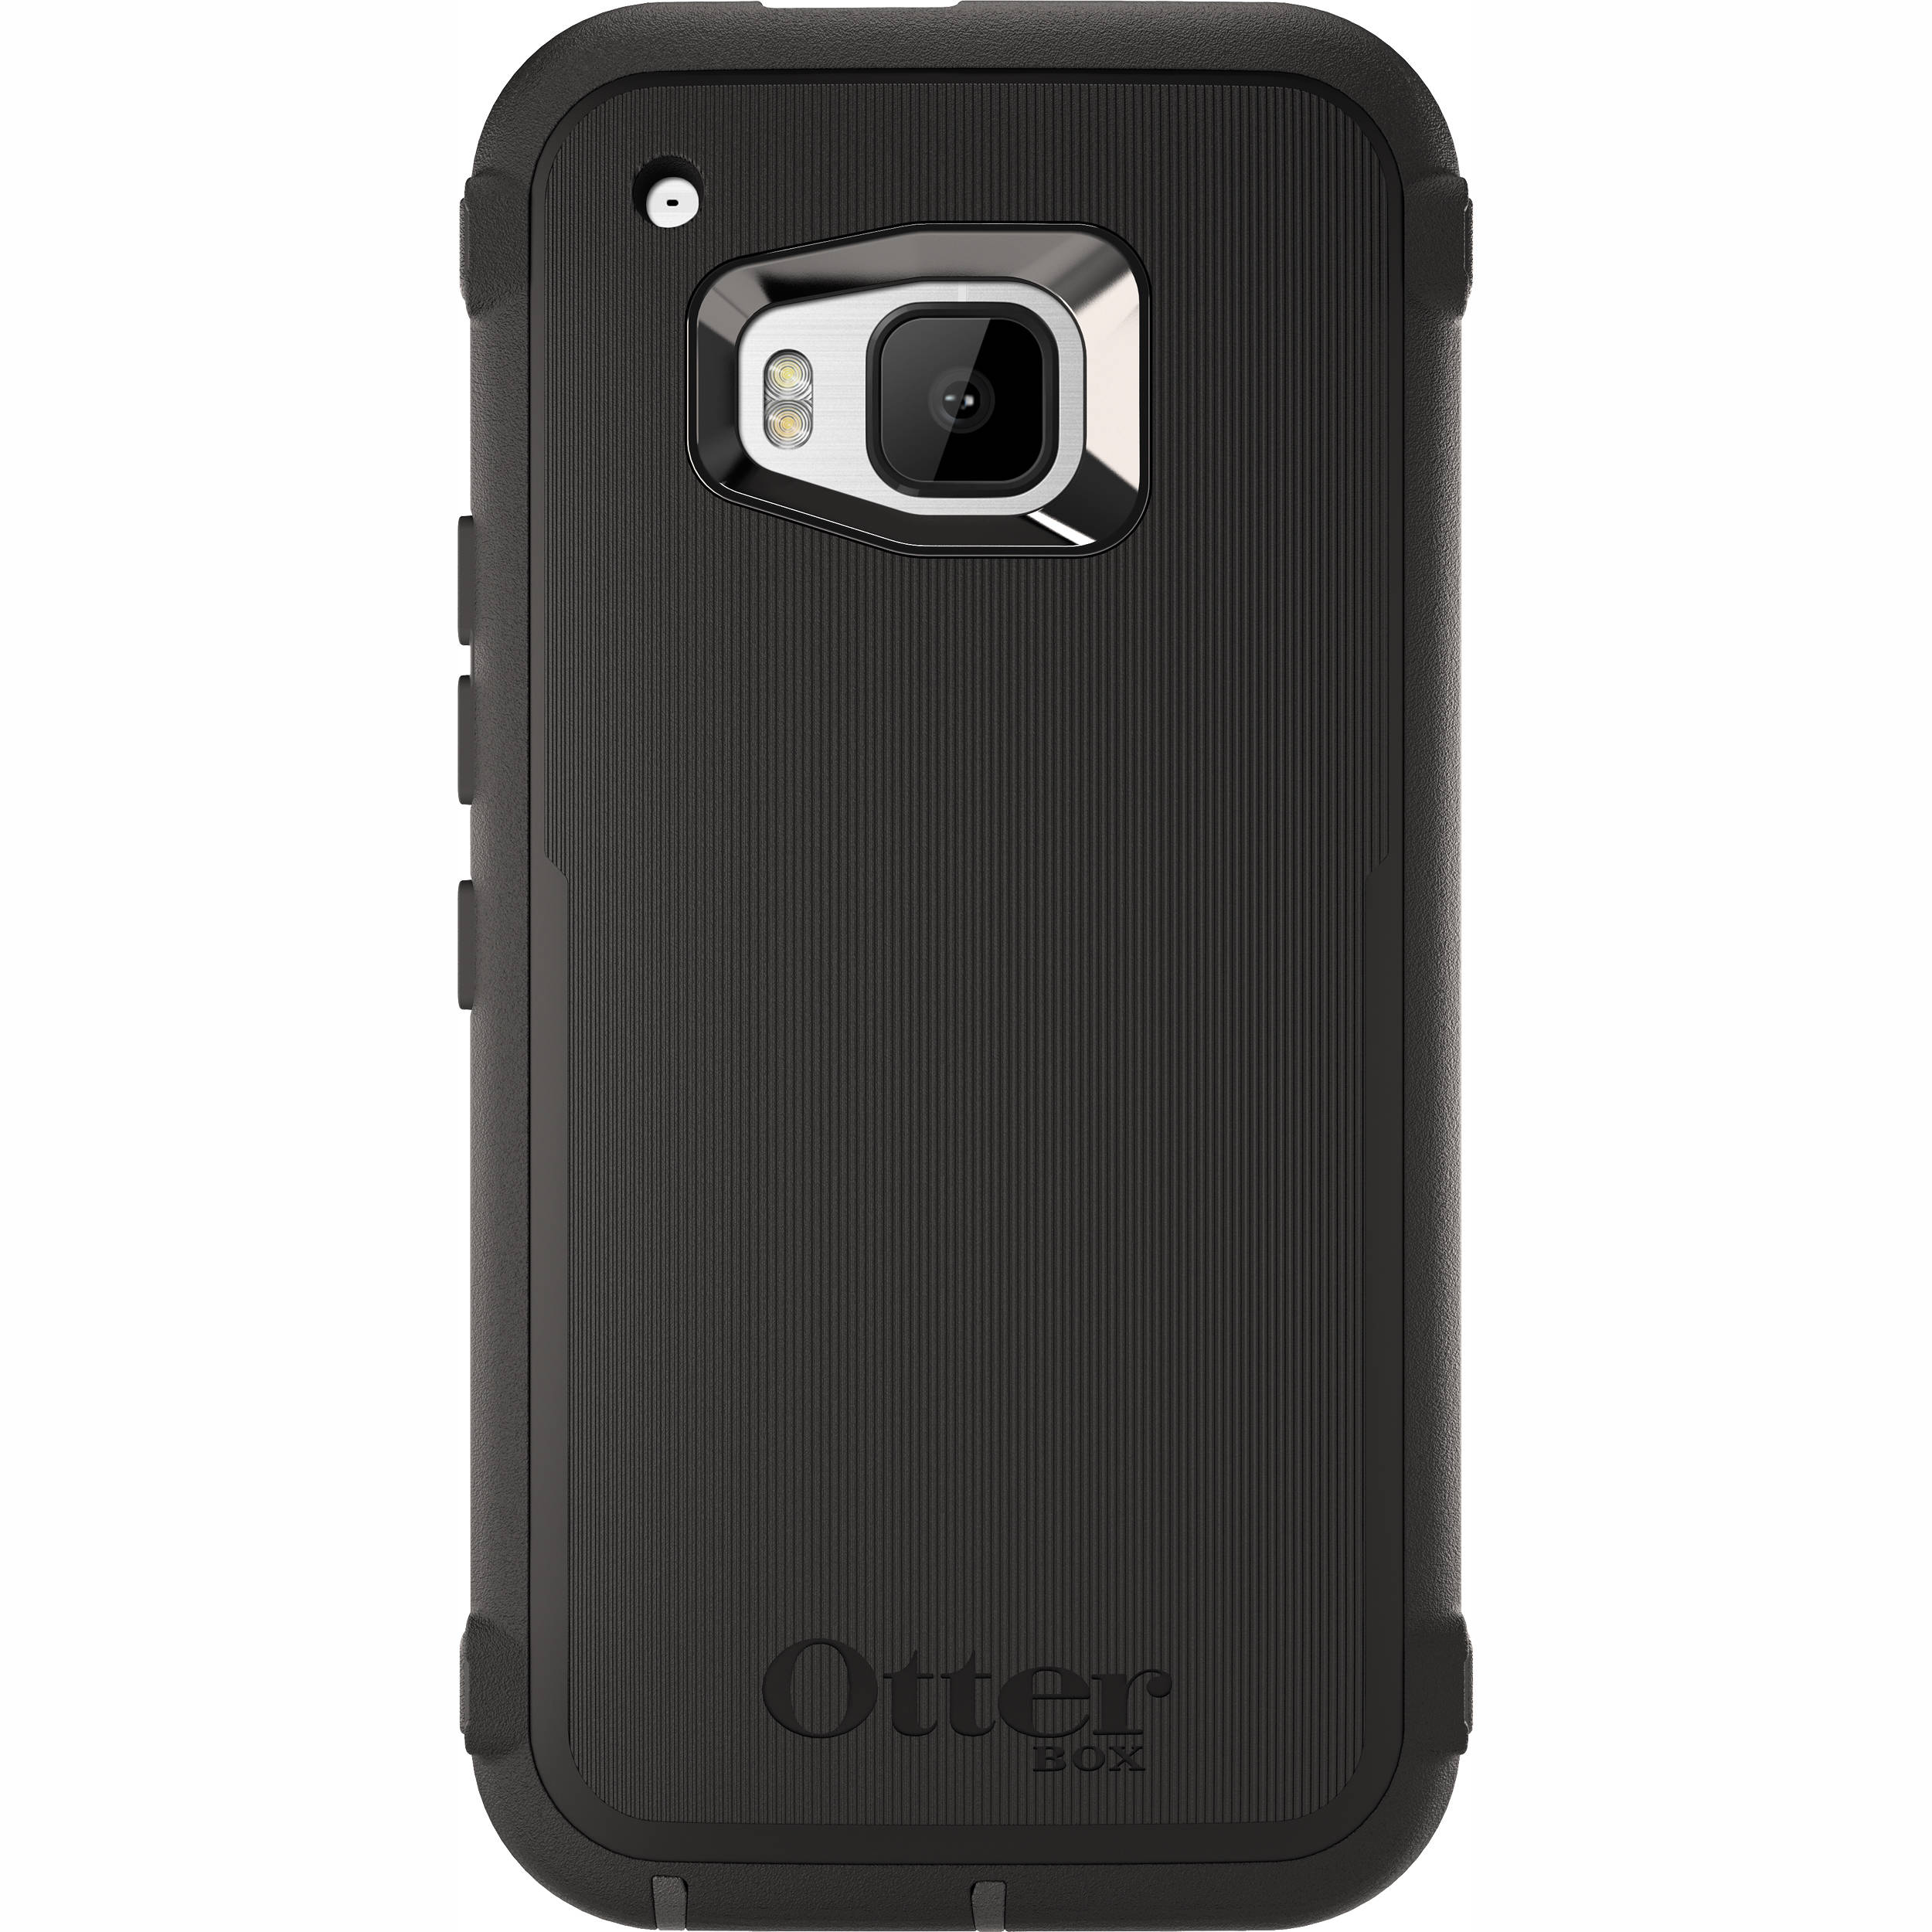 size 40 917c7 8e450 OtterBox Defender Series Case for HTC One M9 (Black)